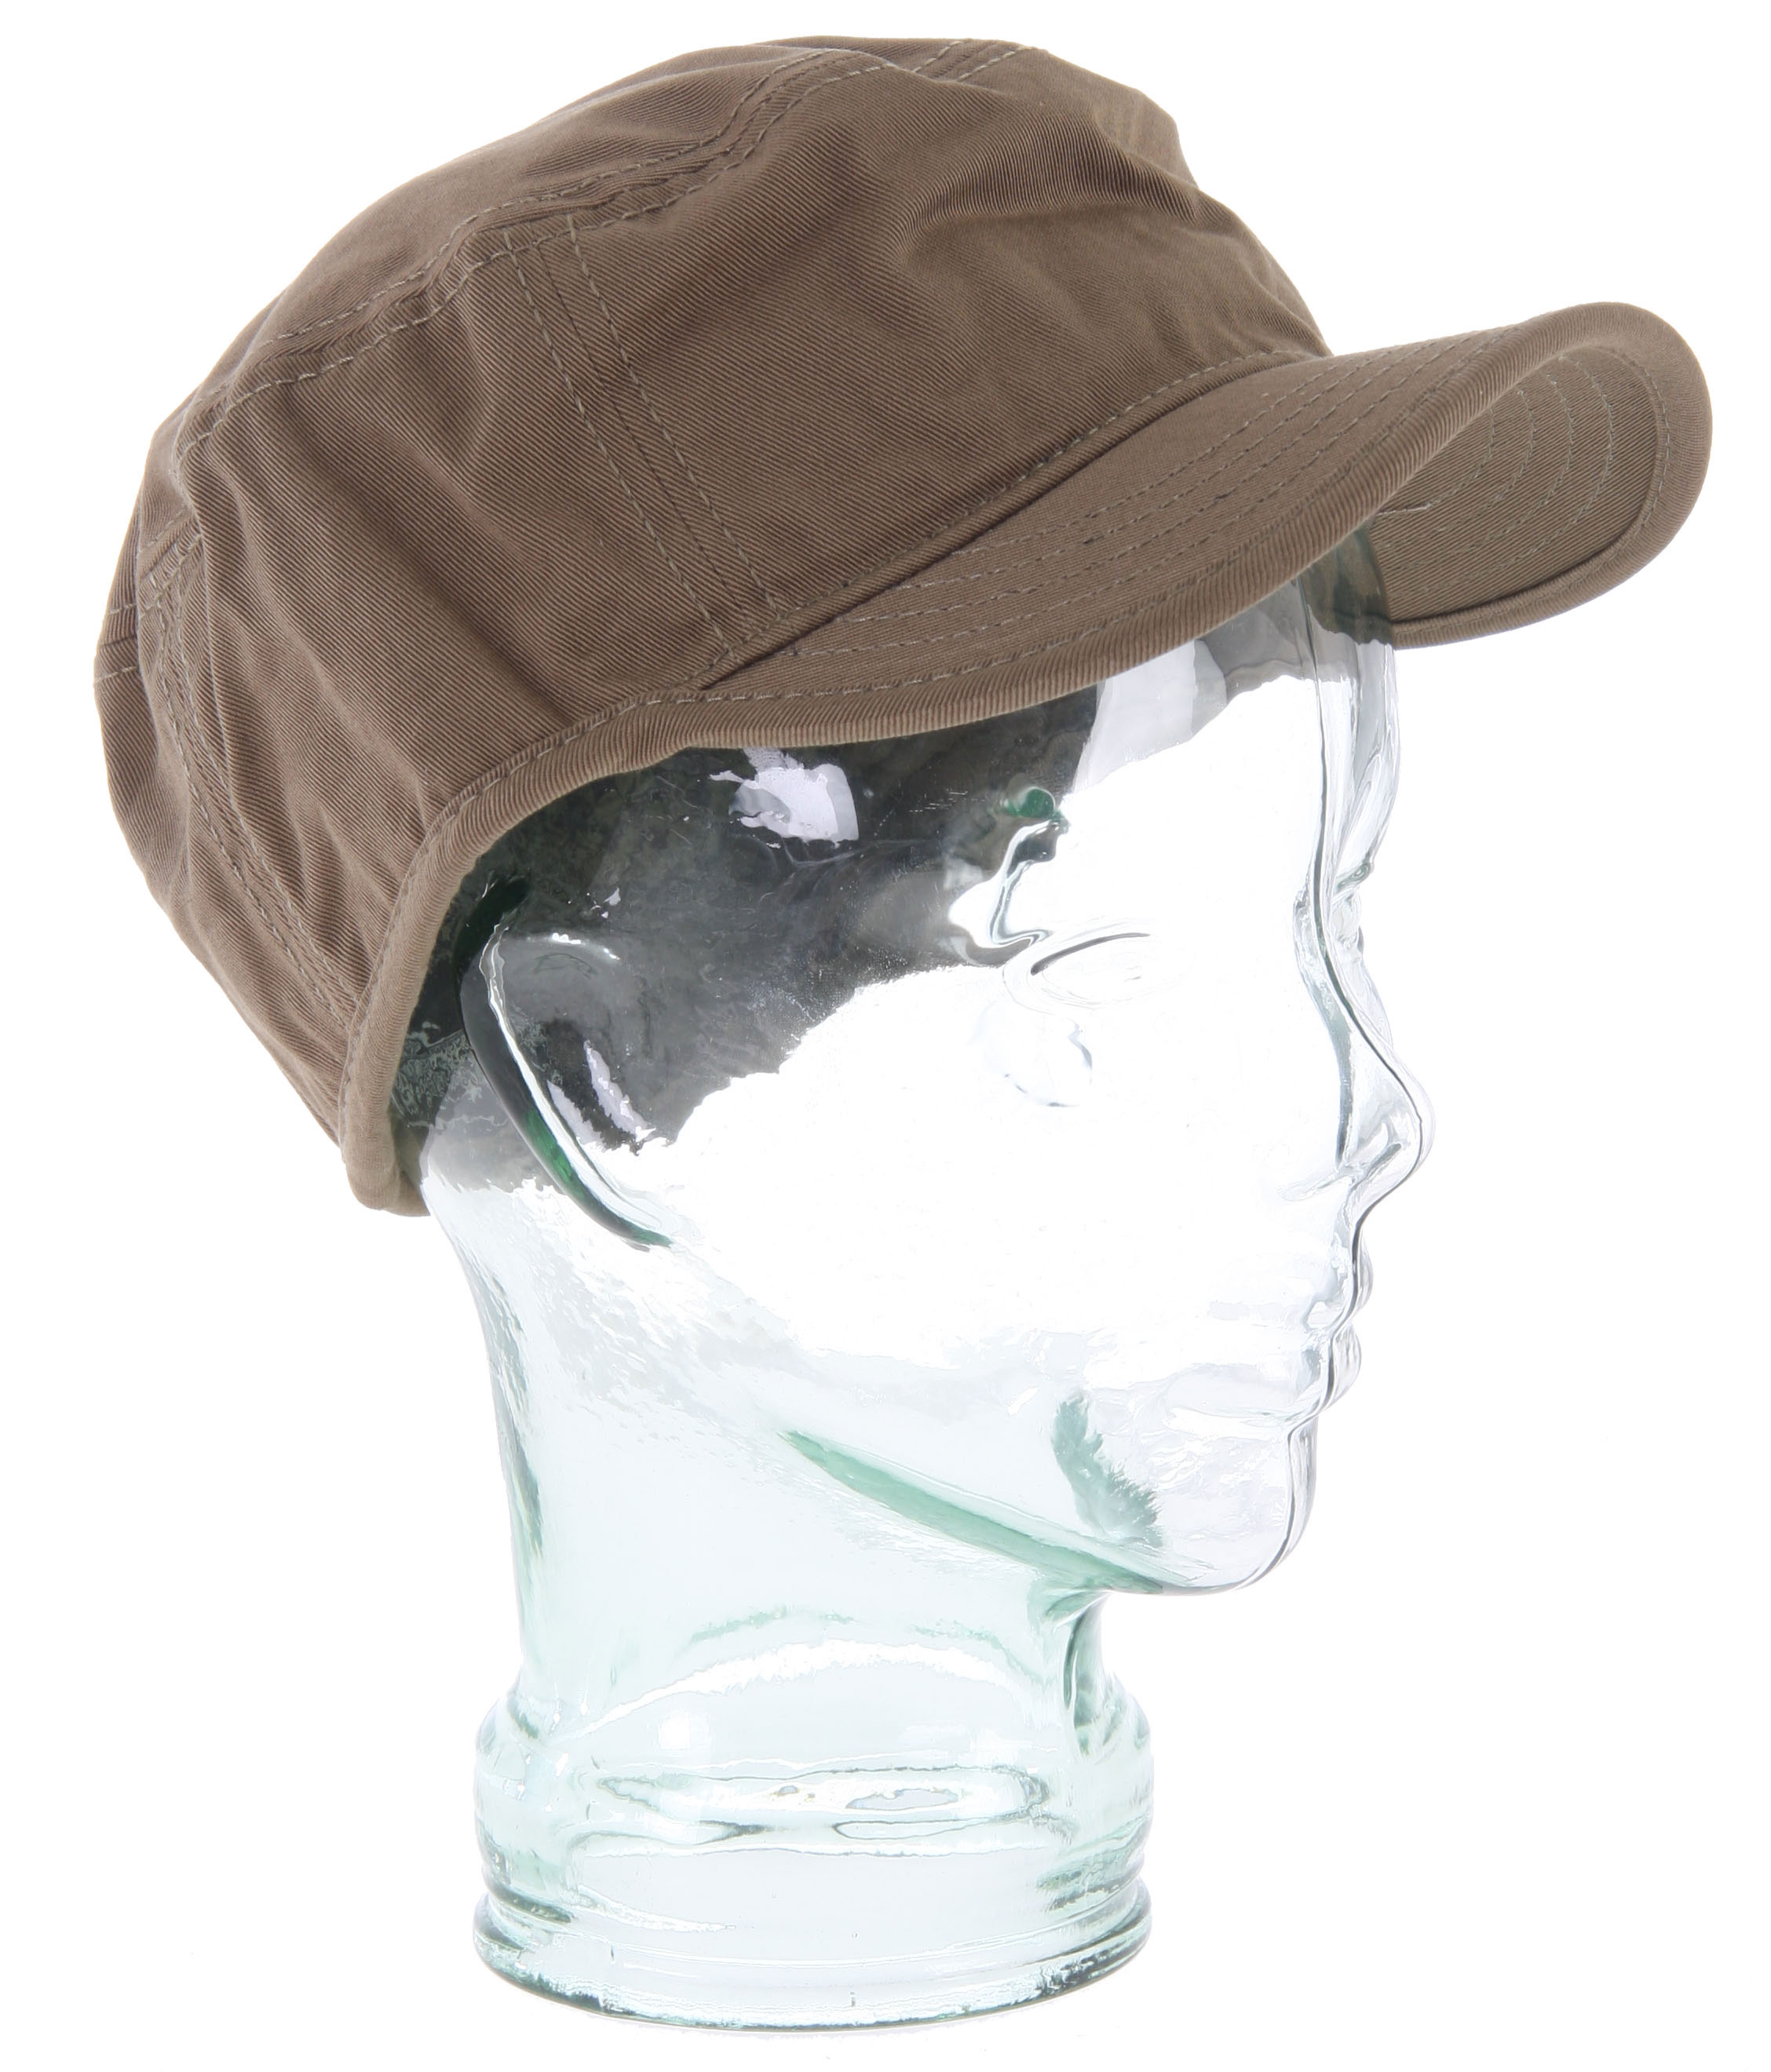 Planet Earth Johnston Hat Army - $15.95